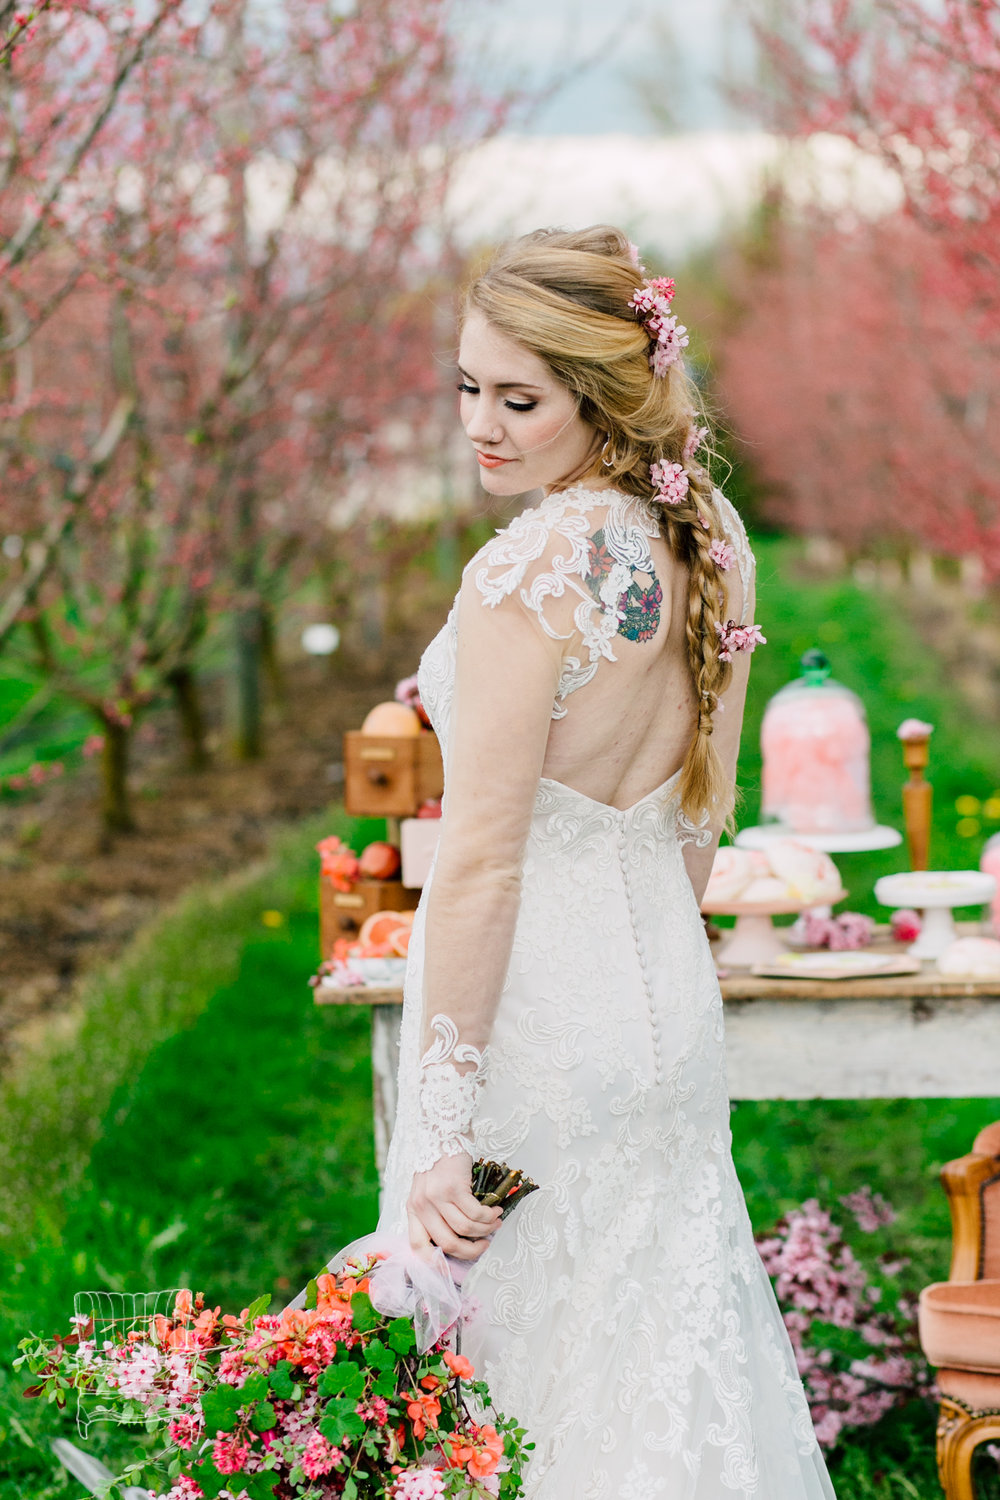 cloud-mountain-farm-everson-bellingham-washington-spring-styled-session-katheryn-moran-photography-89.JPG